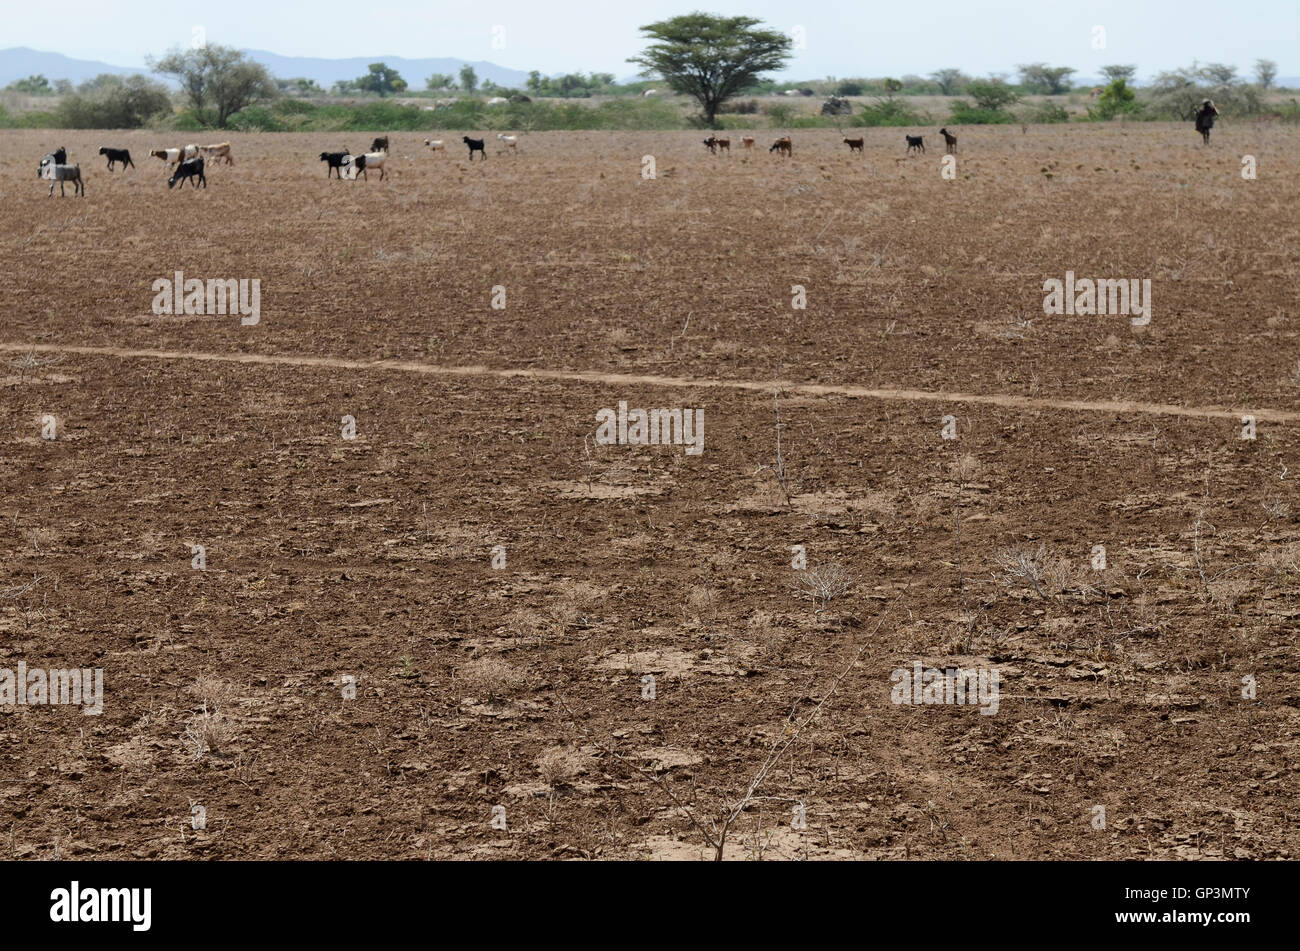 KENYA Turkana Region, Kakuma , Turkana a nilotic tribe, the region suffers from permanent drought problems - Stock Image